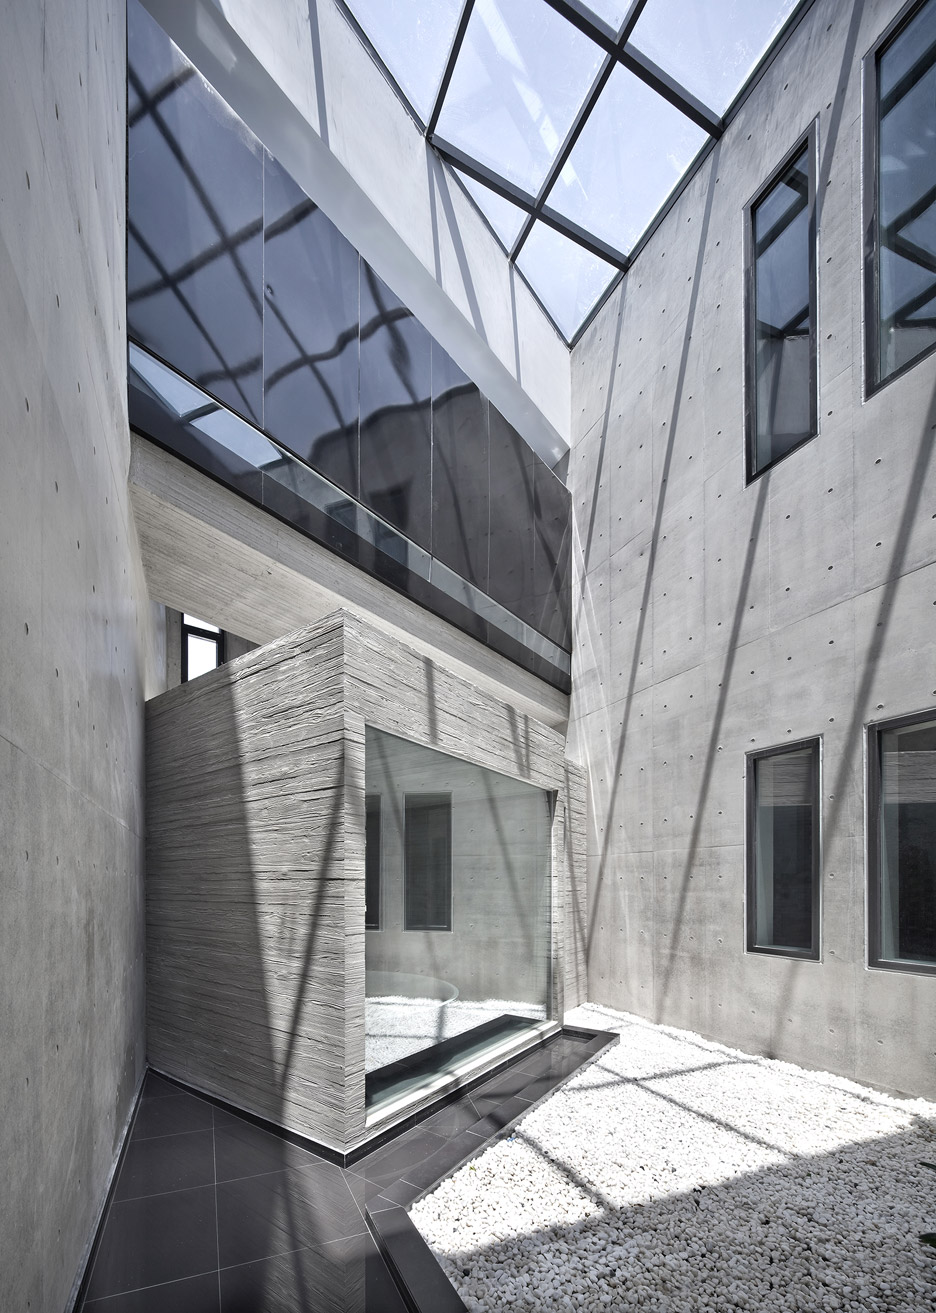 Alley's Adventures in Wonder House by Architect K